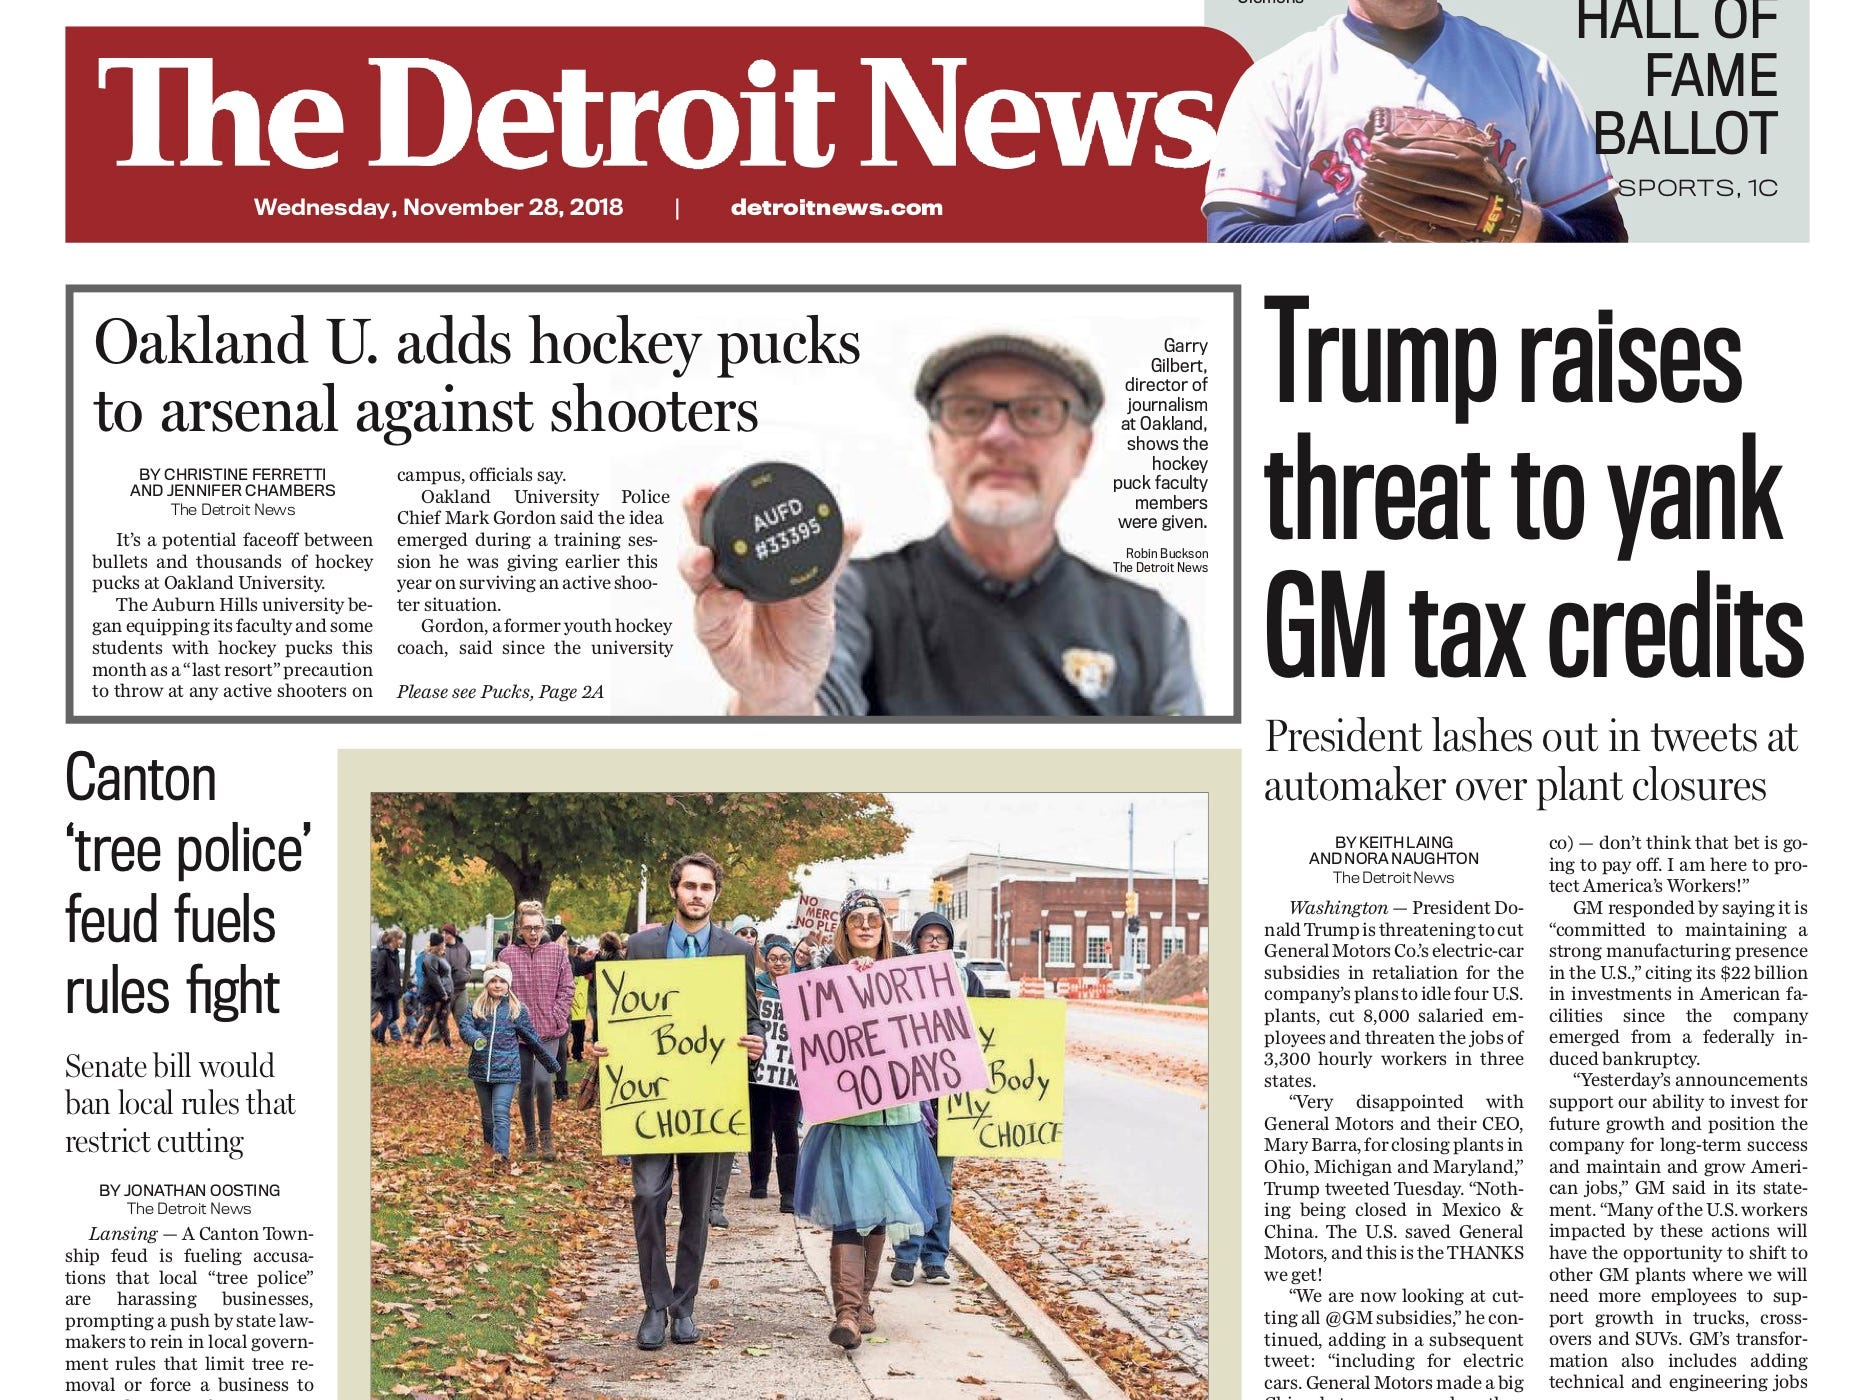 The front page of the Detroit News on November 28, 2018.